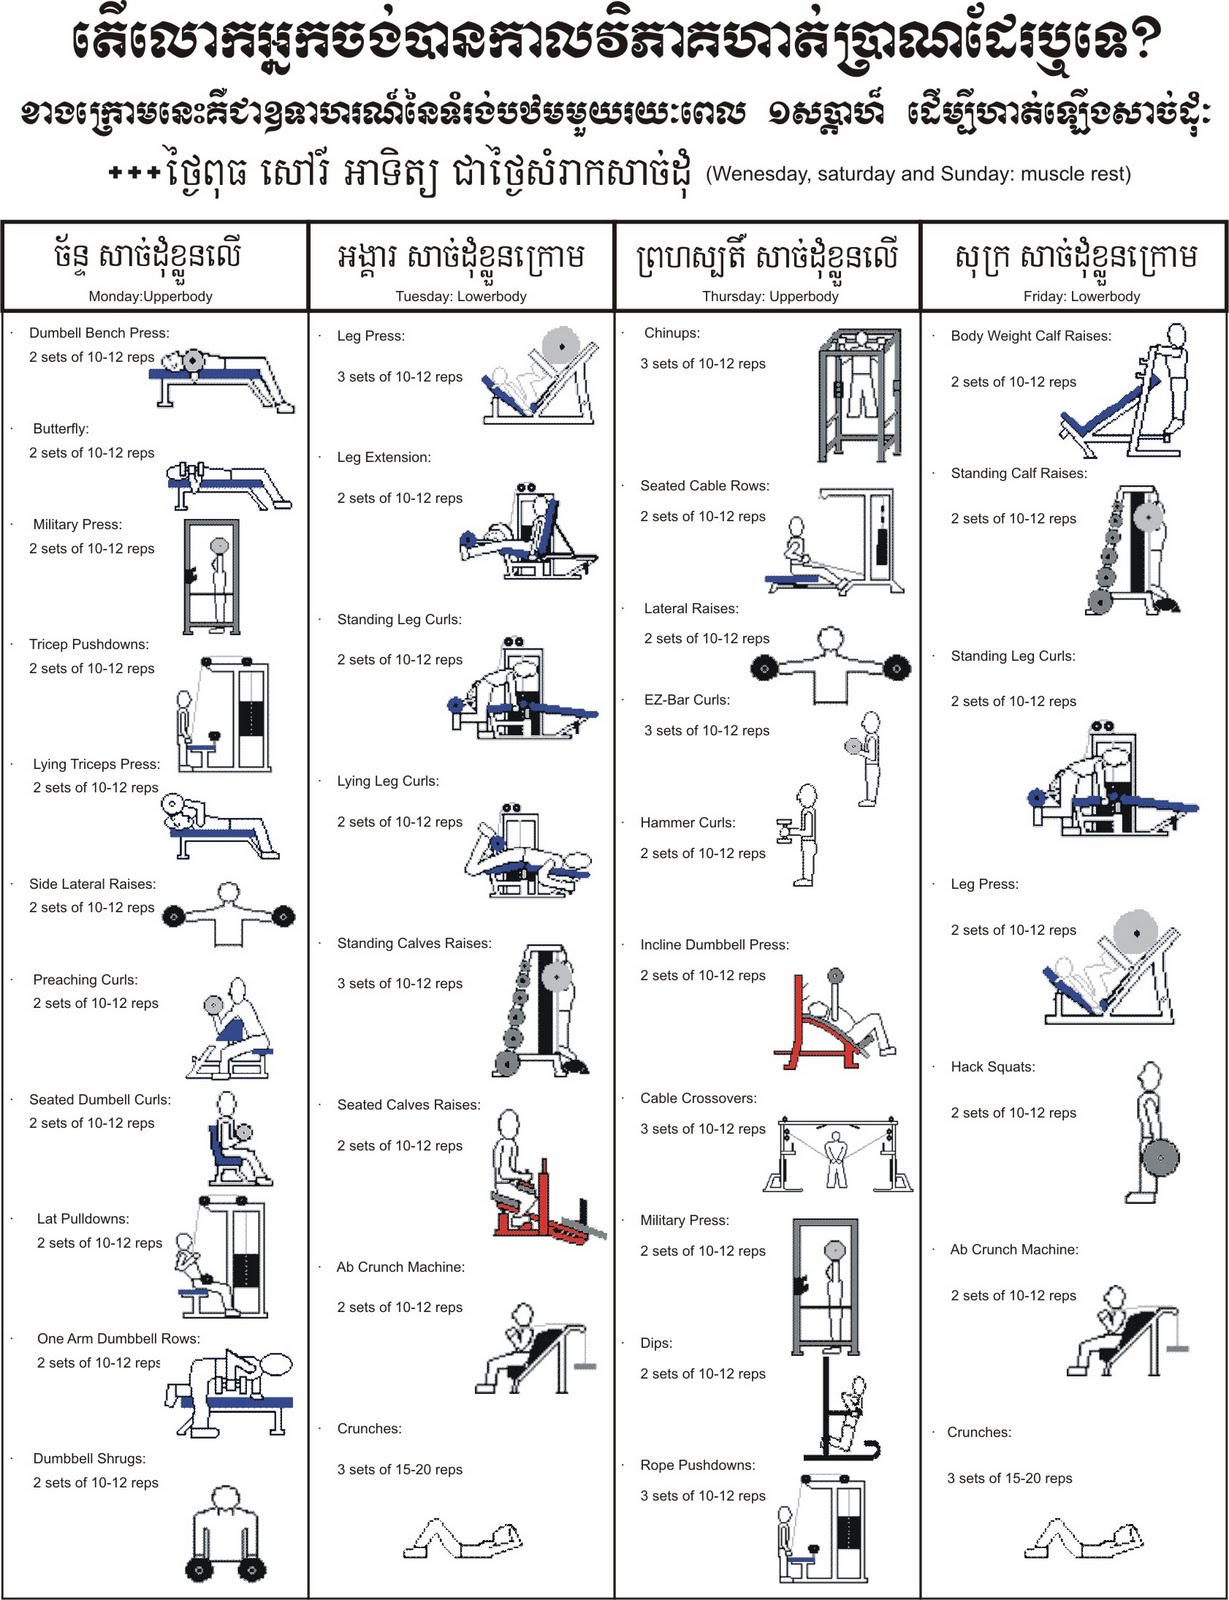 Lean Muscle Exercise Program Images